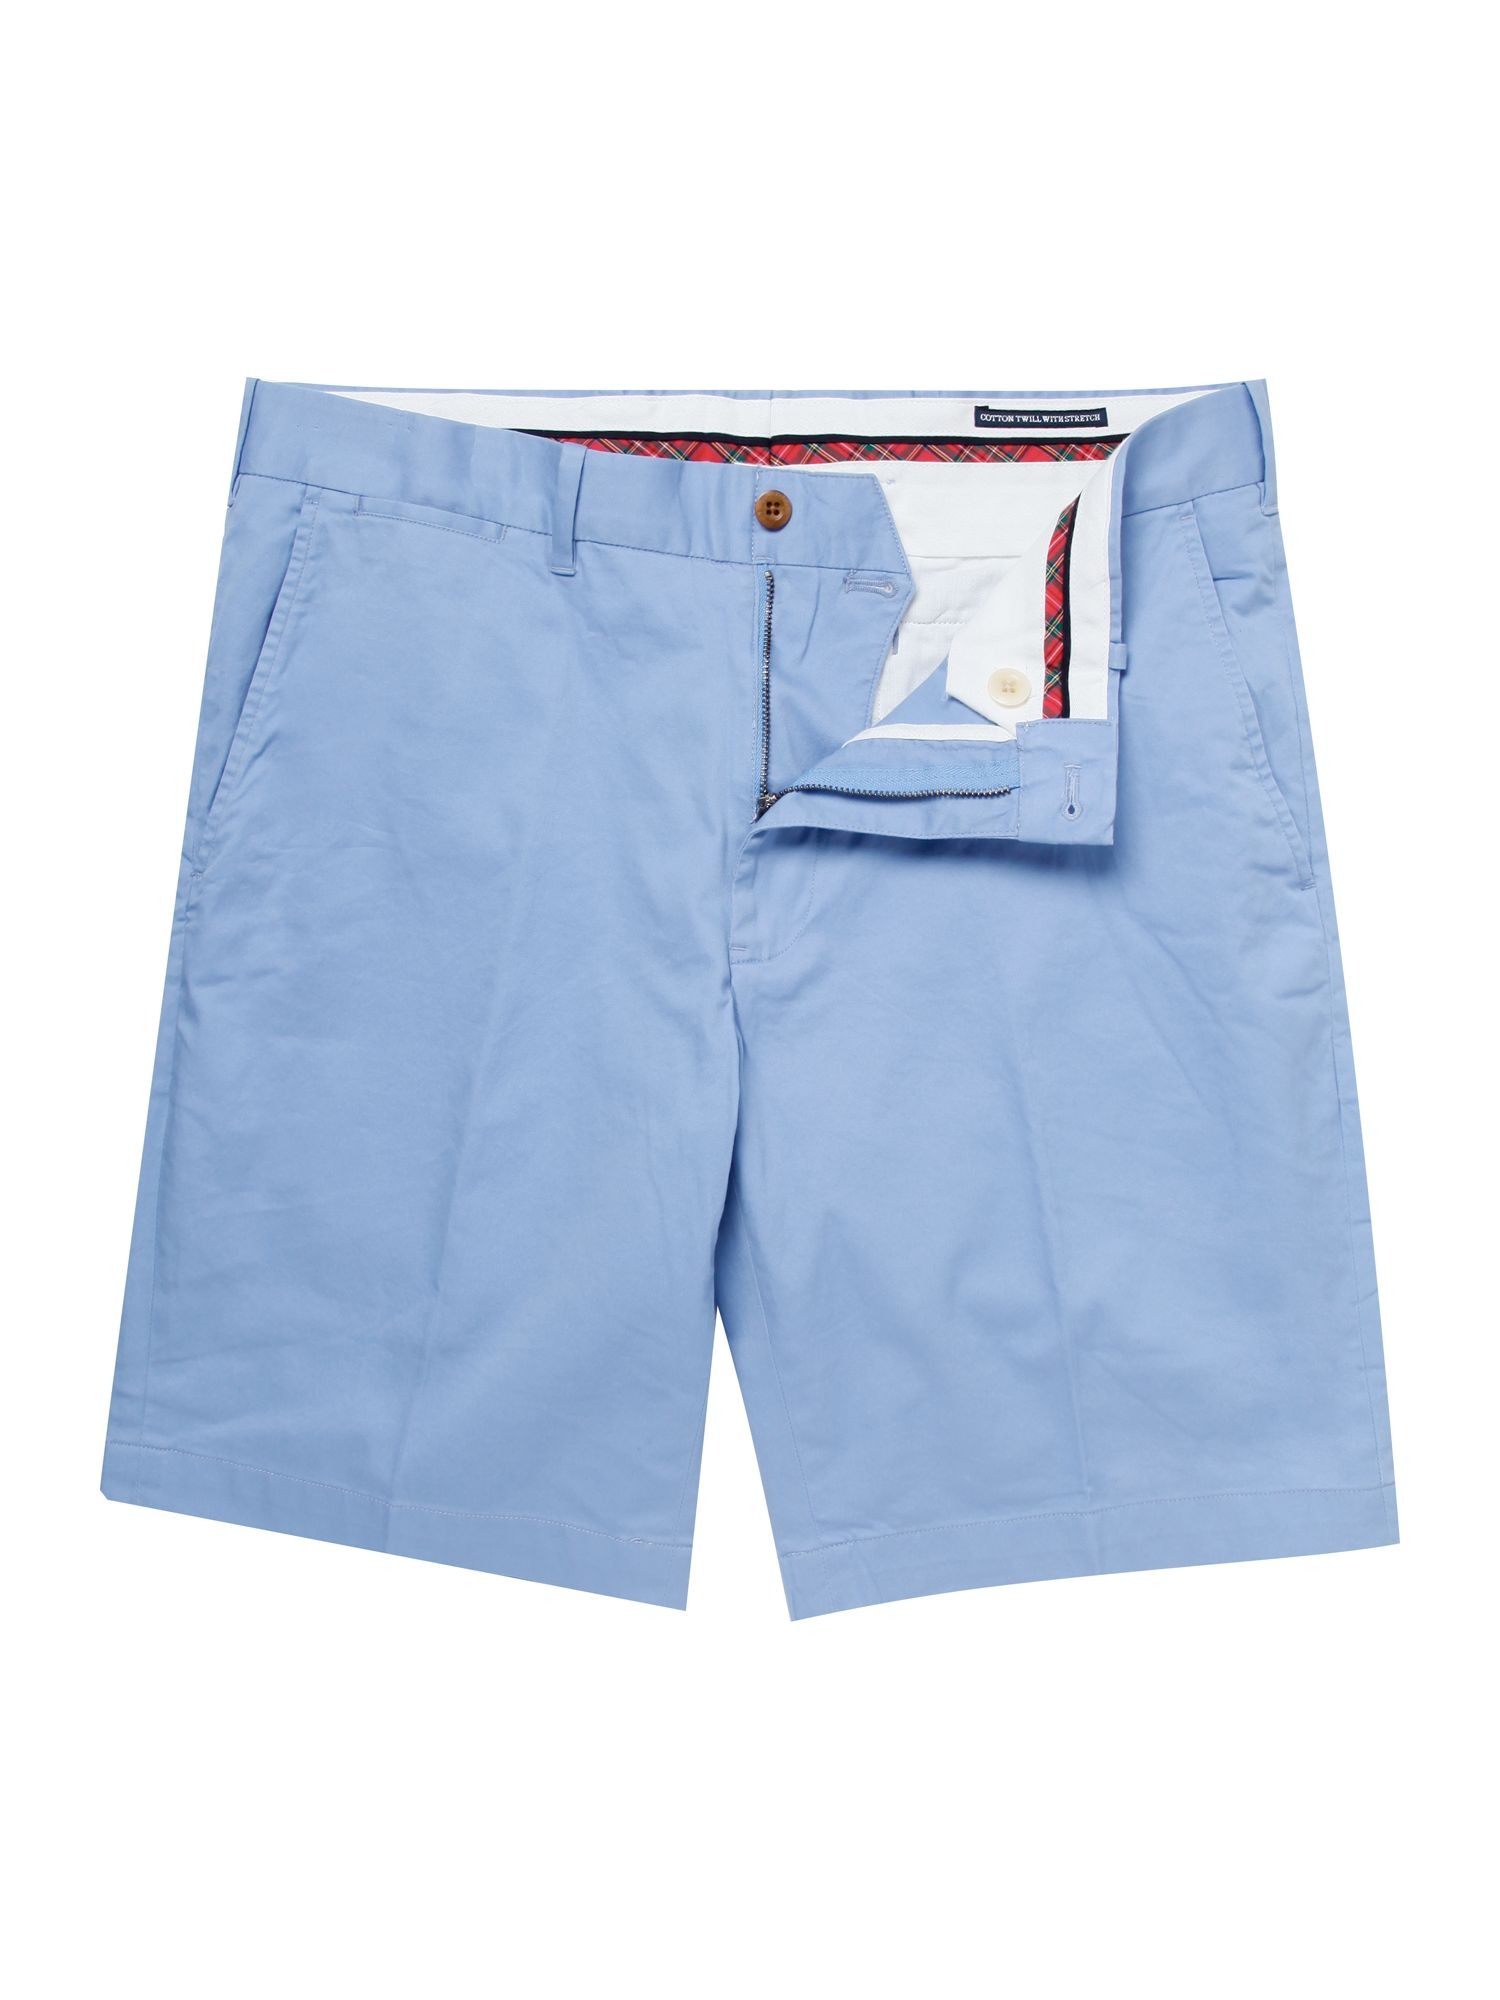 Barrow fit chino shorts